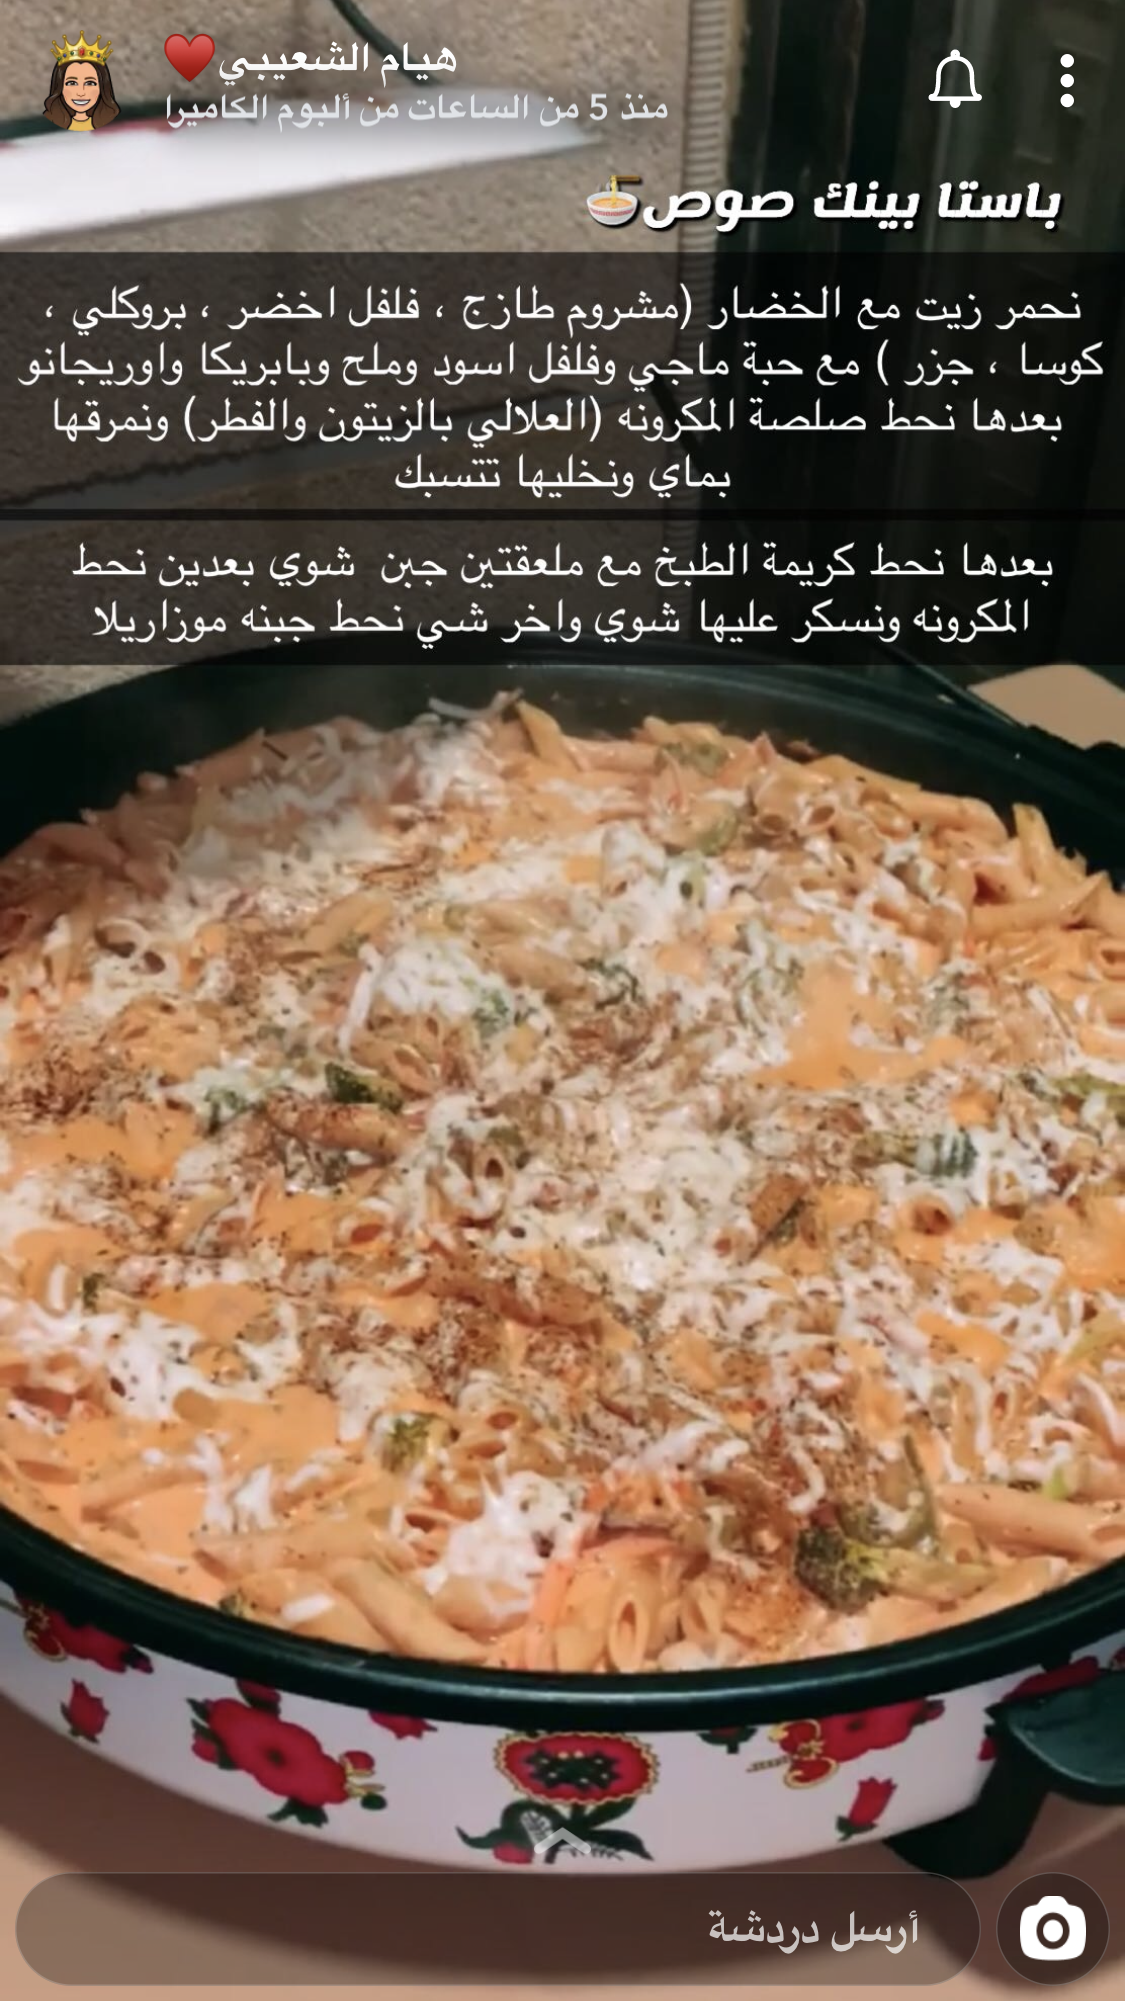 Pin By Maryam Mohamed On Food And Drink In 2020 Food Hacks Cooking Food And Drink